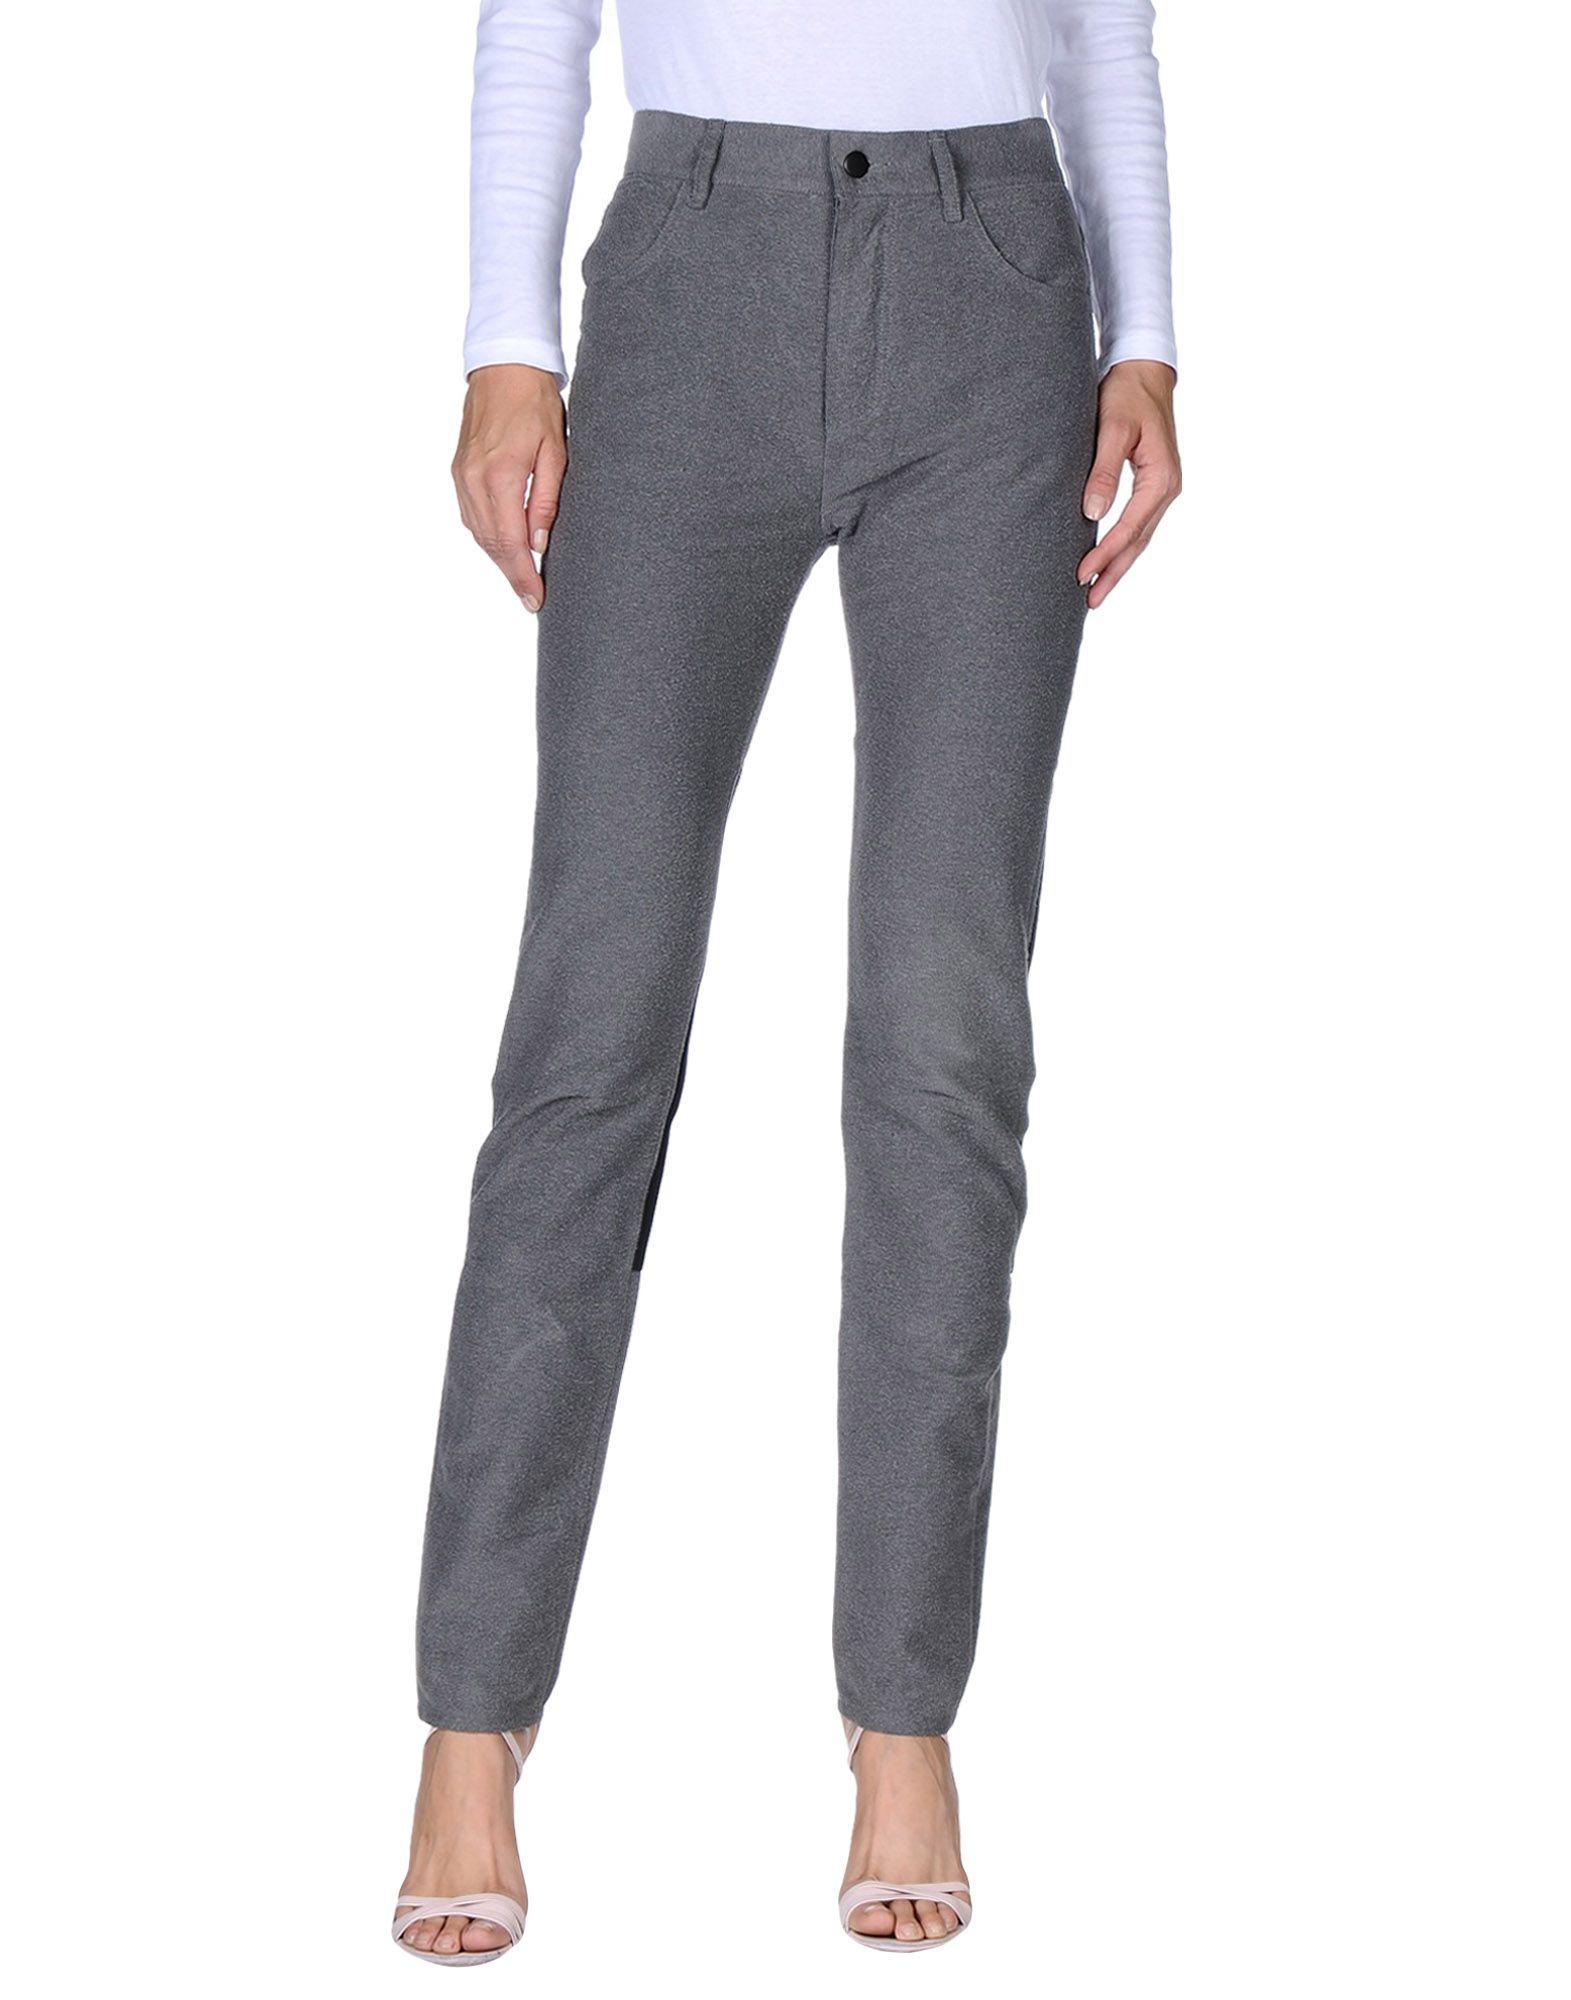 TROUSERS - Casual trousers Kostas Murkudis